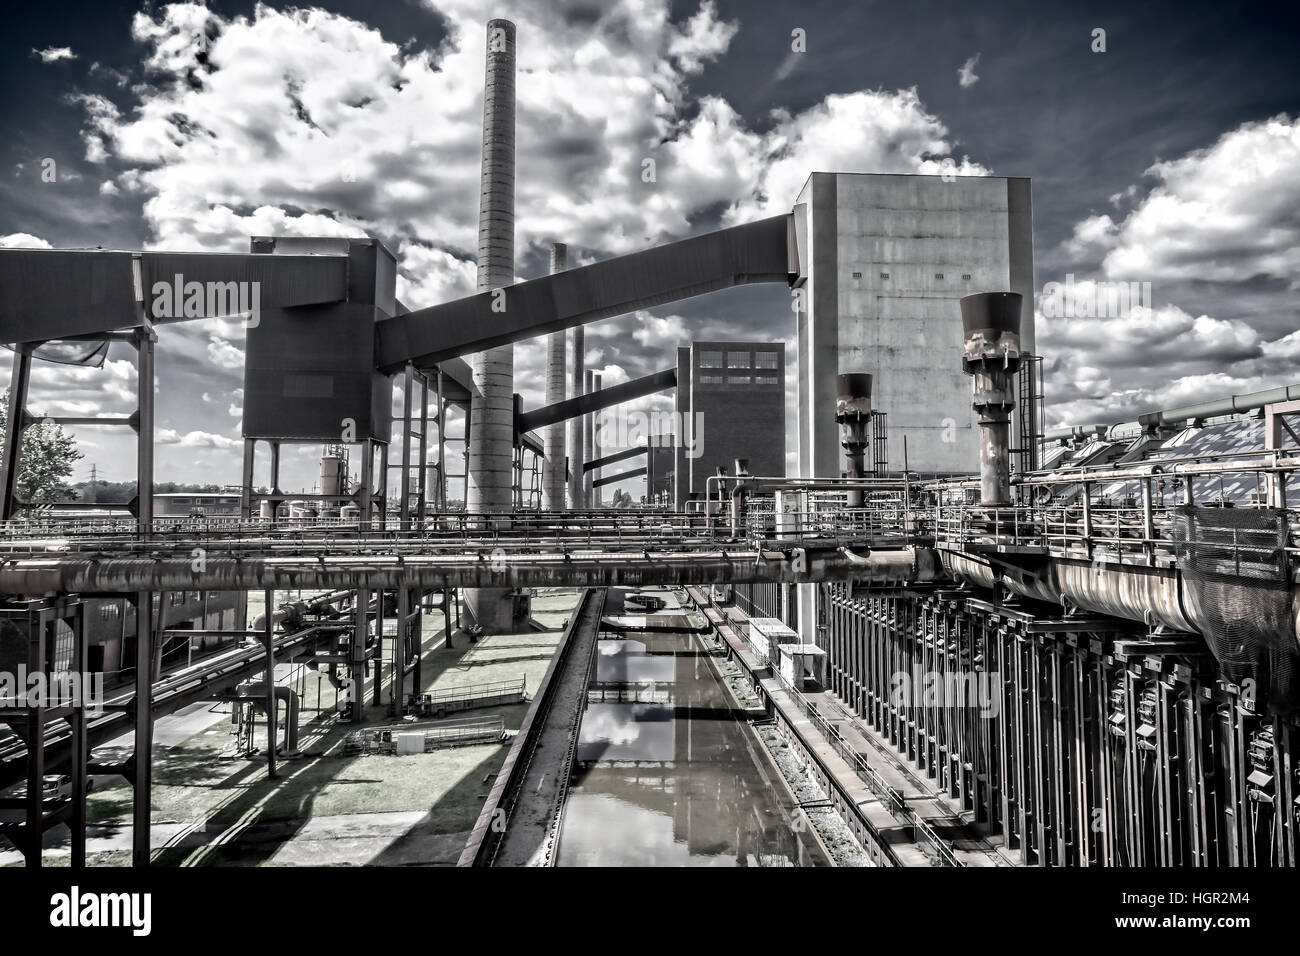 Outdoor facility of the 'Zeche Zollverein' in Essen-Germany. The closed coke oven plant is world heritage - Stock Image